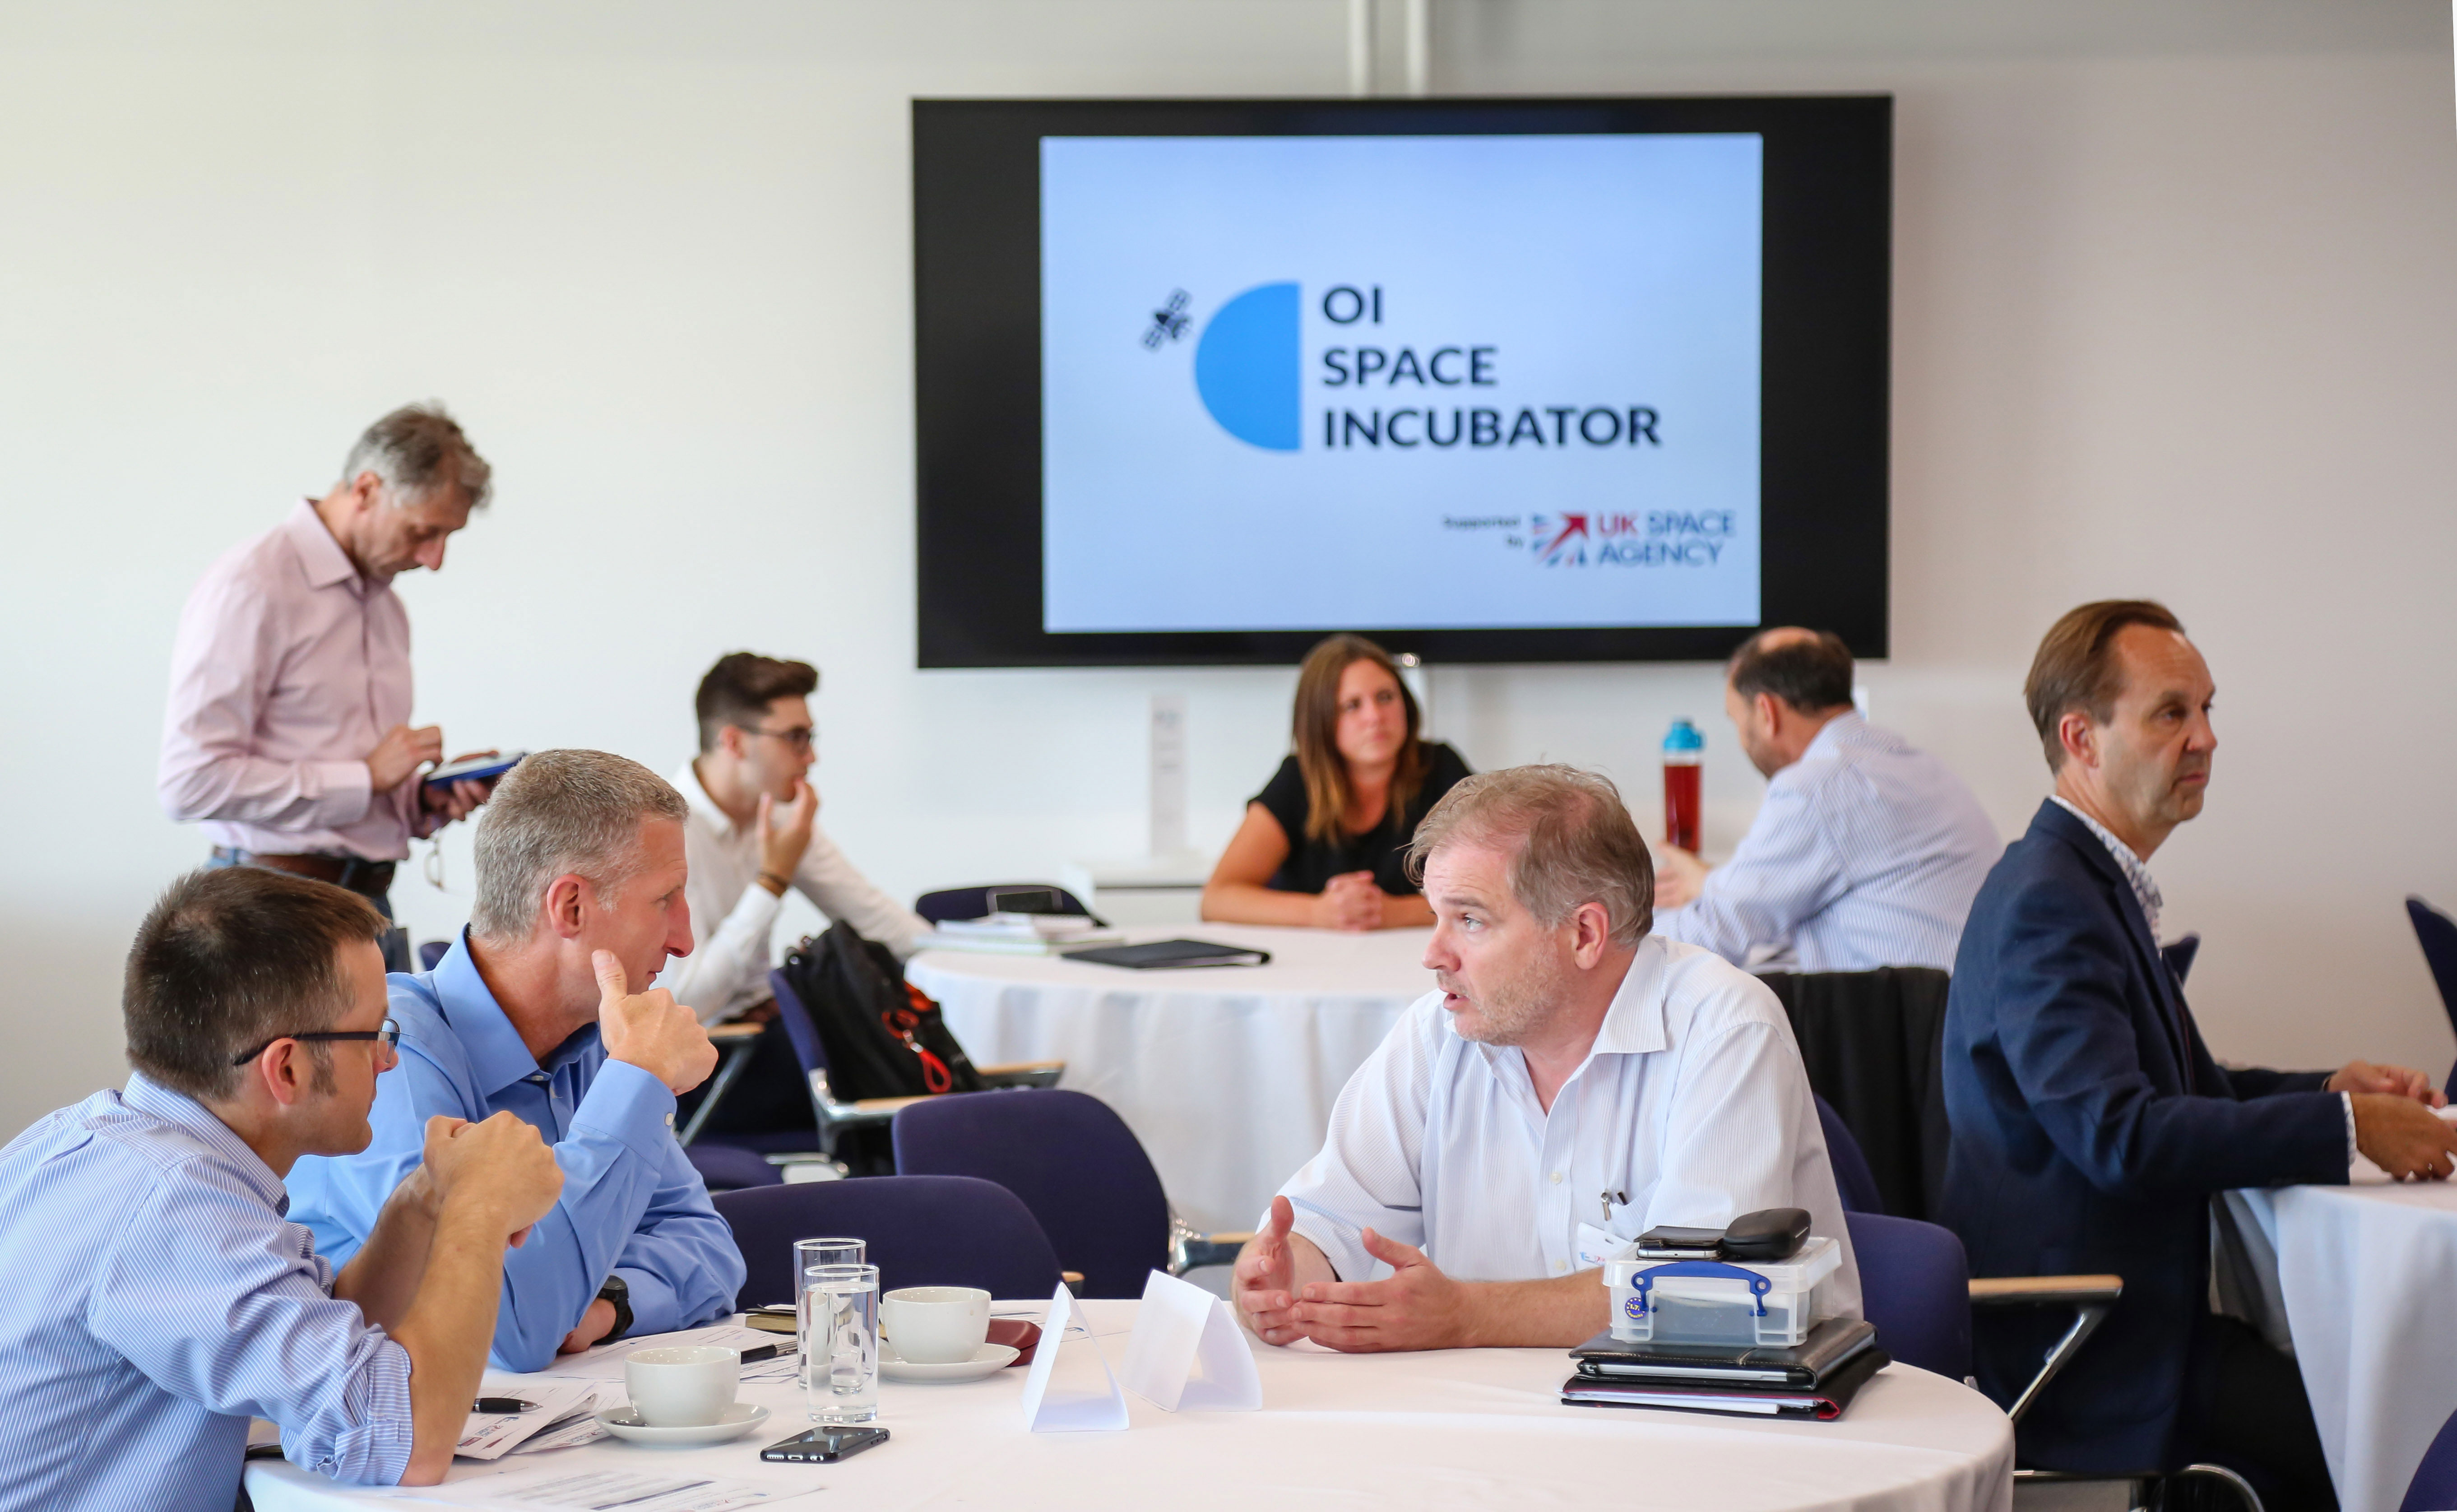 Dynamic ideas sought for second UK Space Agency programme